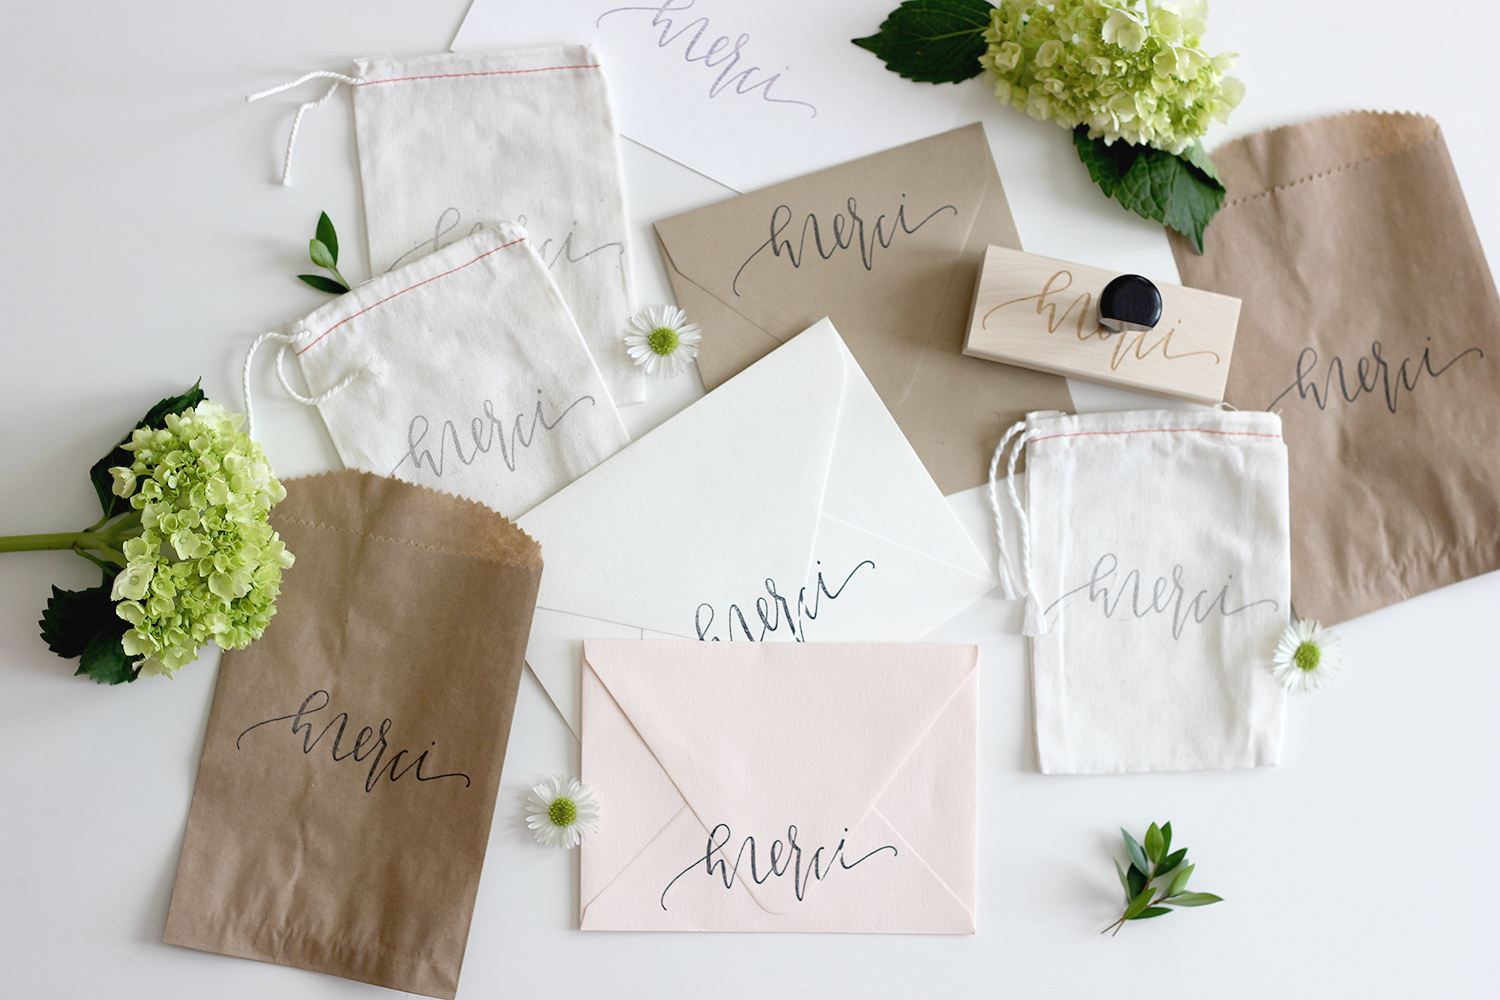 Fancy Paper and Fabric Stamp | A Fabulous Fete